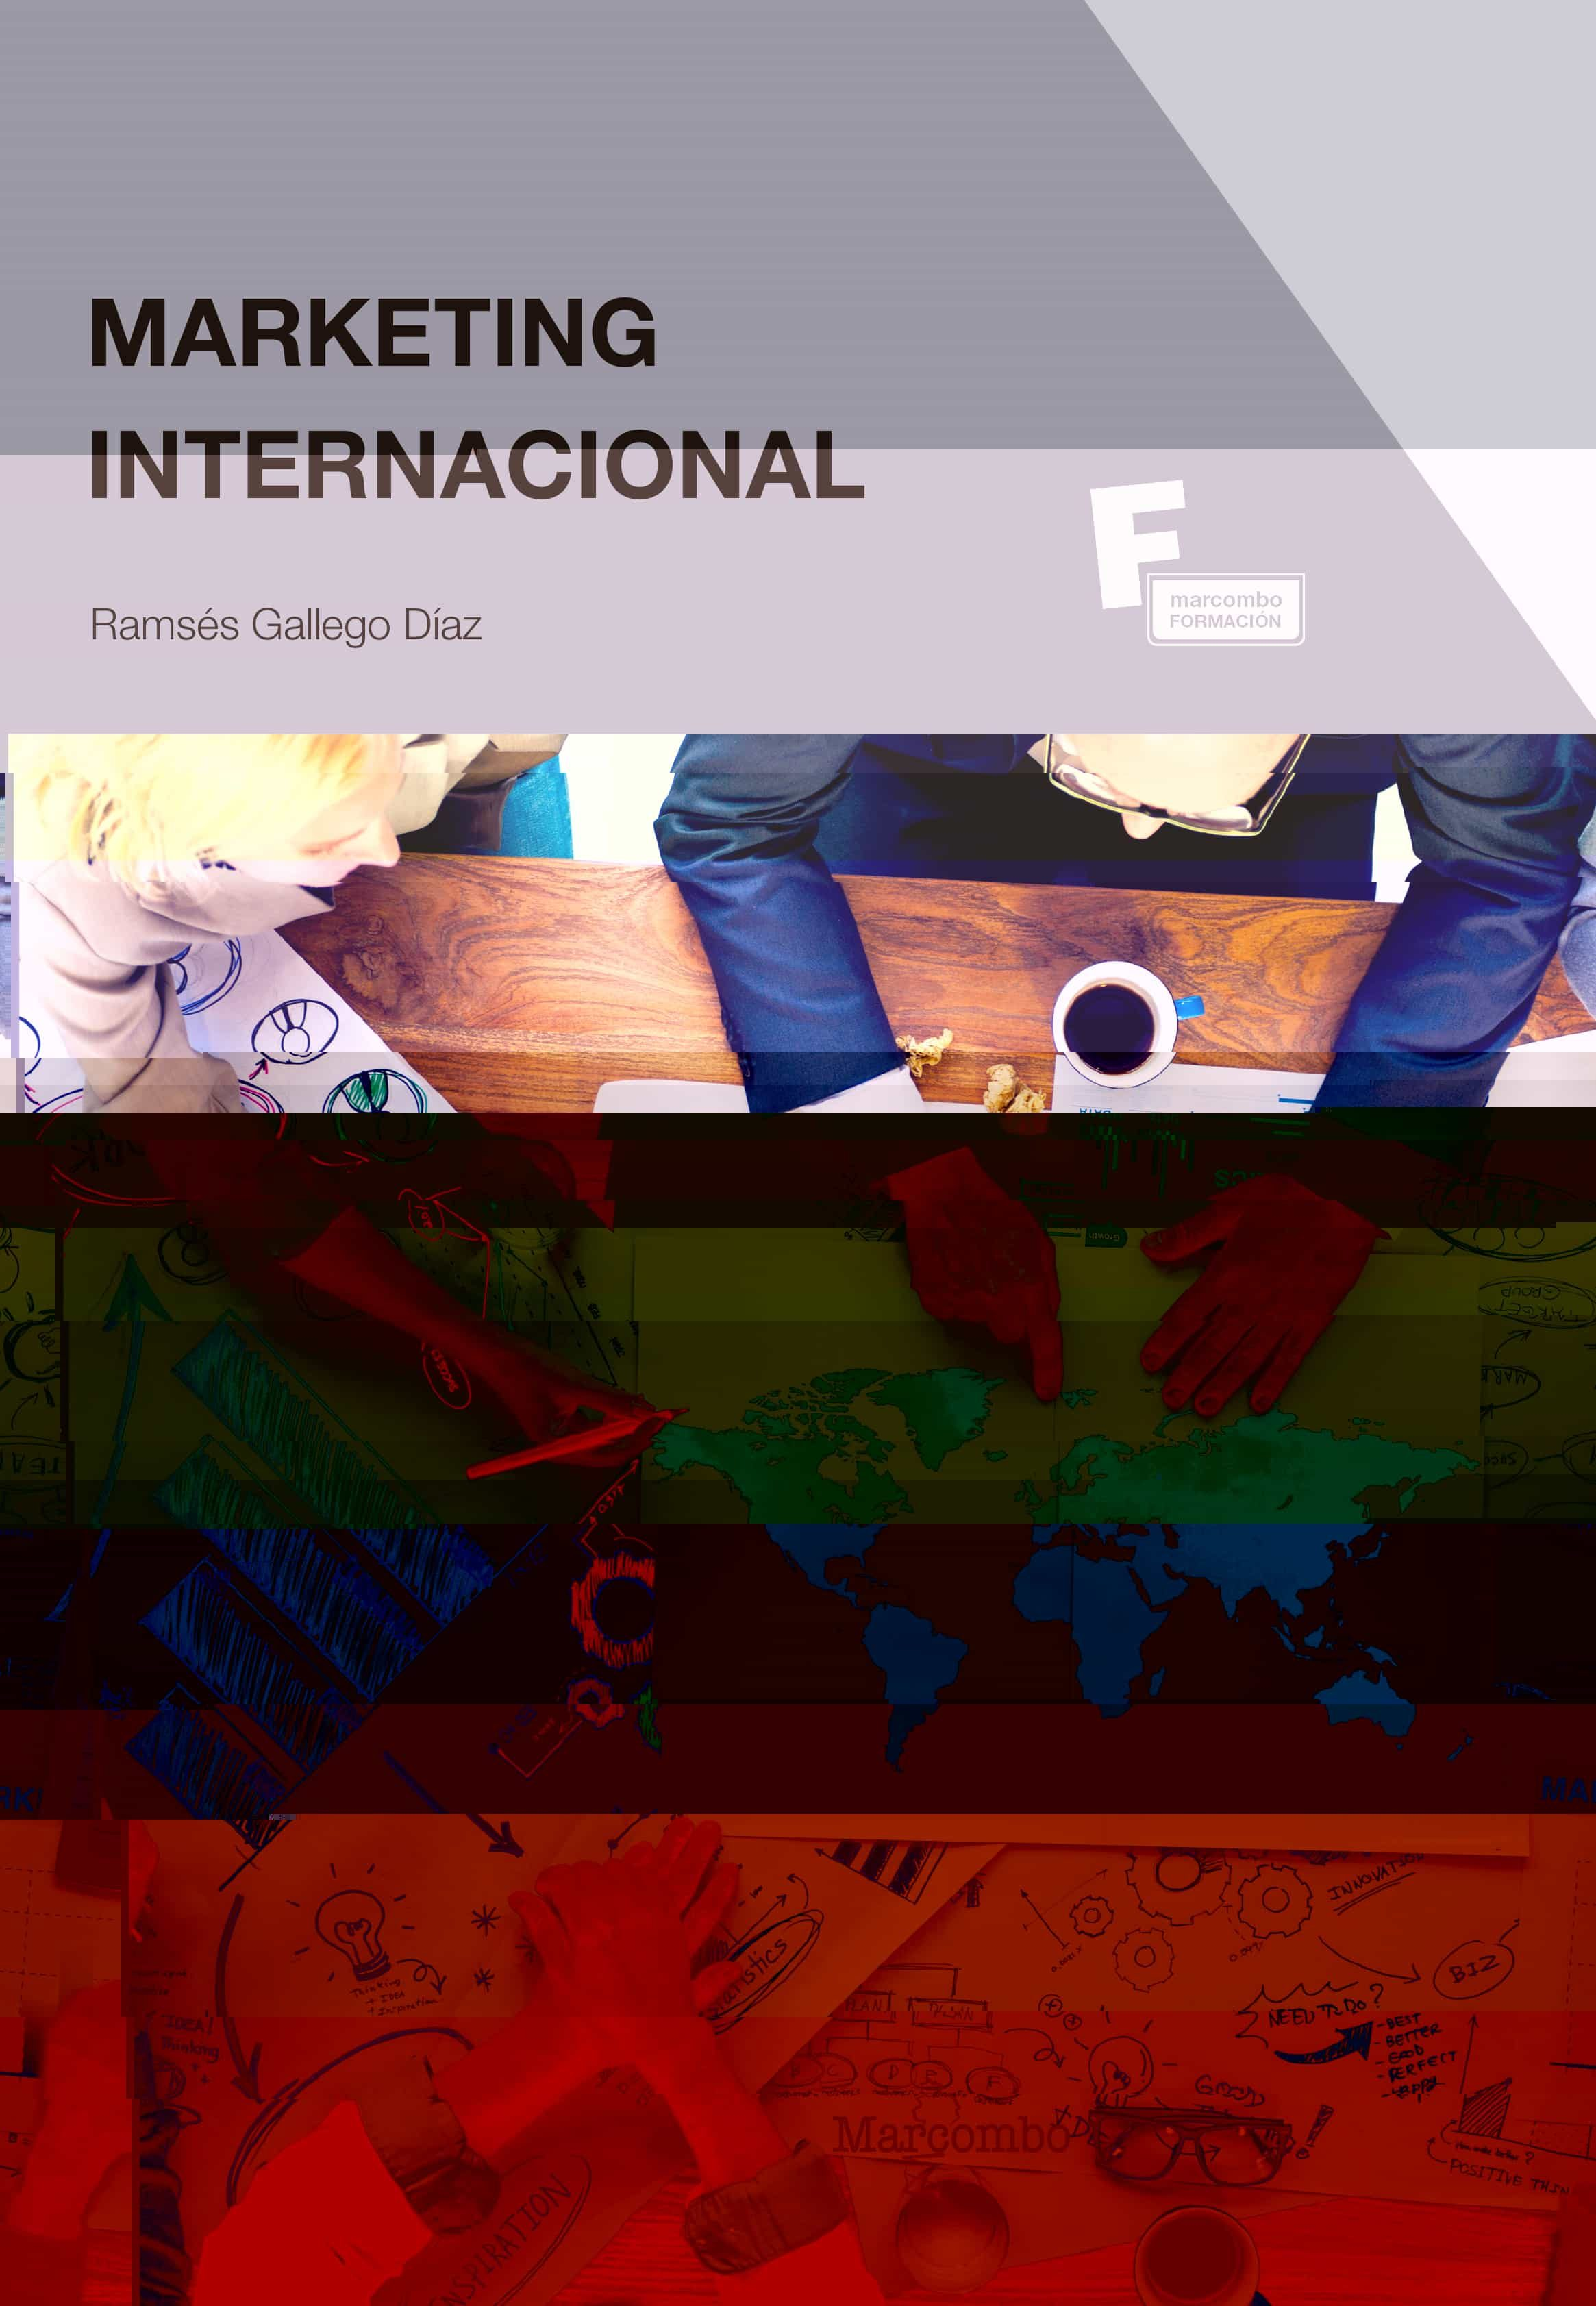 Marketing Internacional por Ramses Gallego Diaz